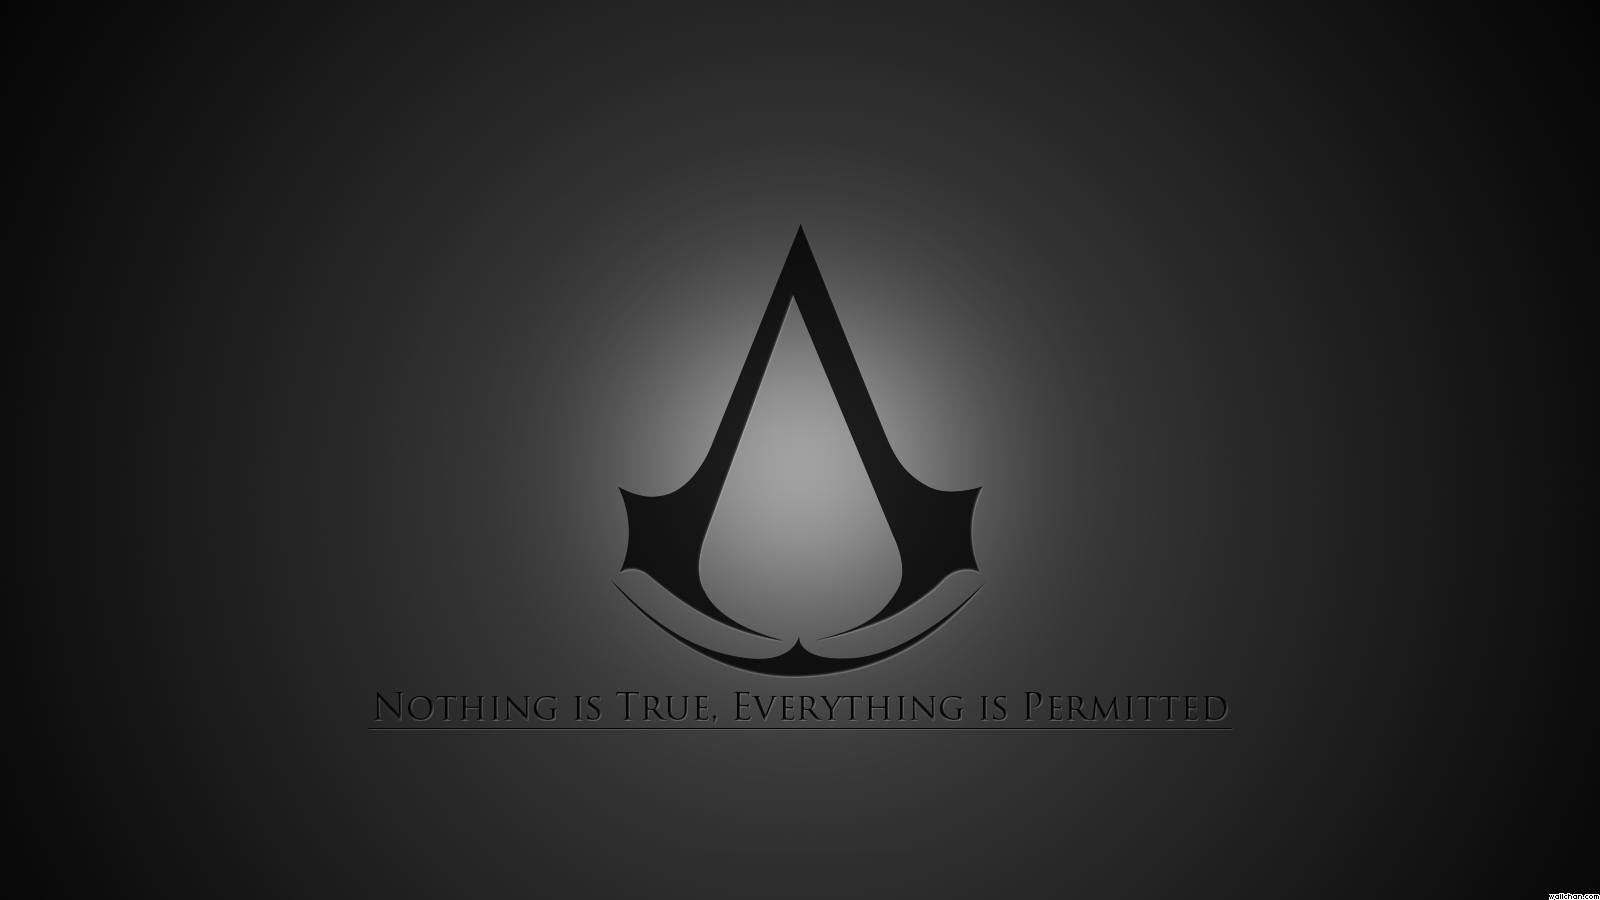 image - 2872--assassins-creed-assassins-creed-logo-permitted-